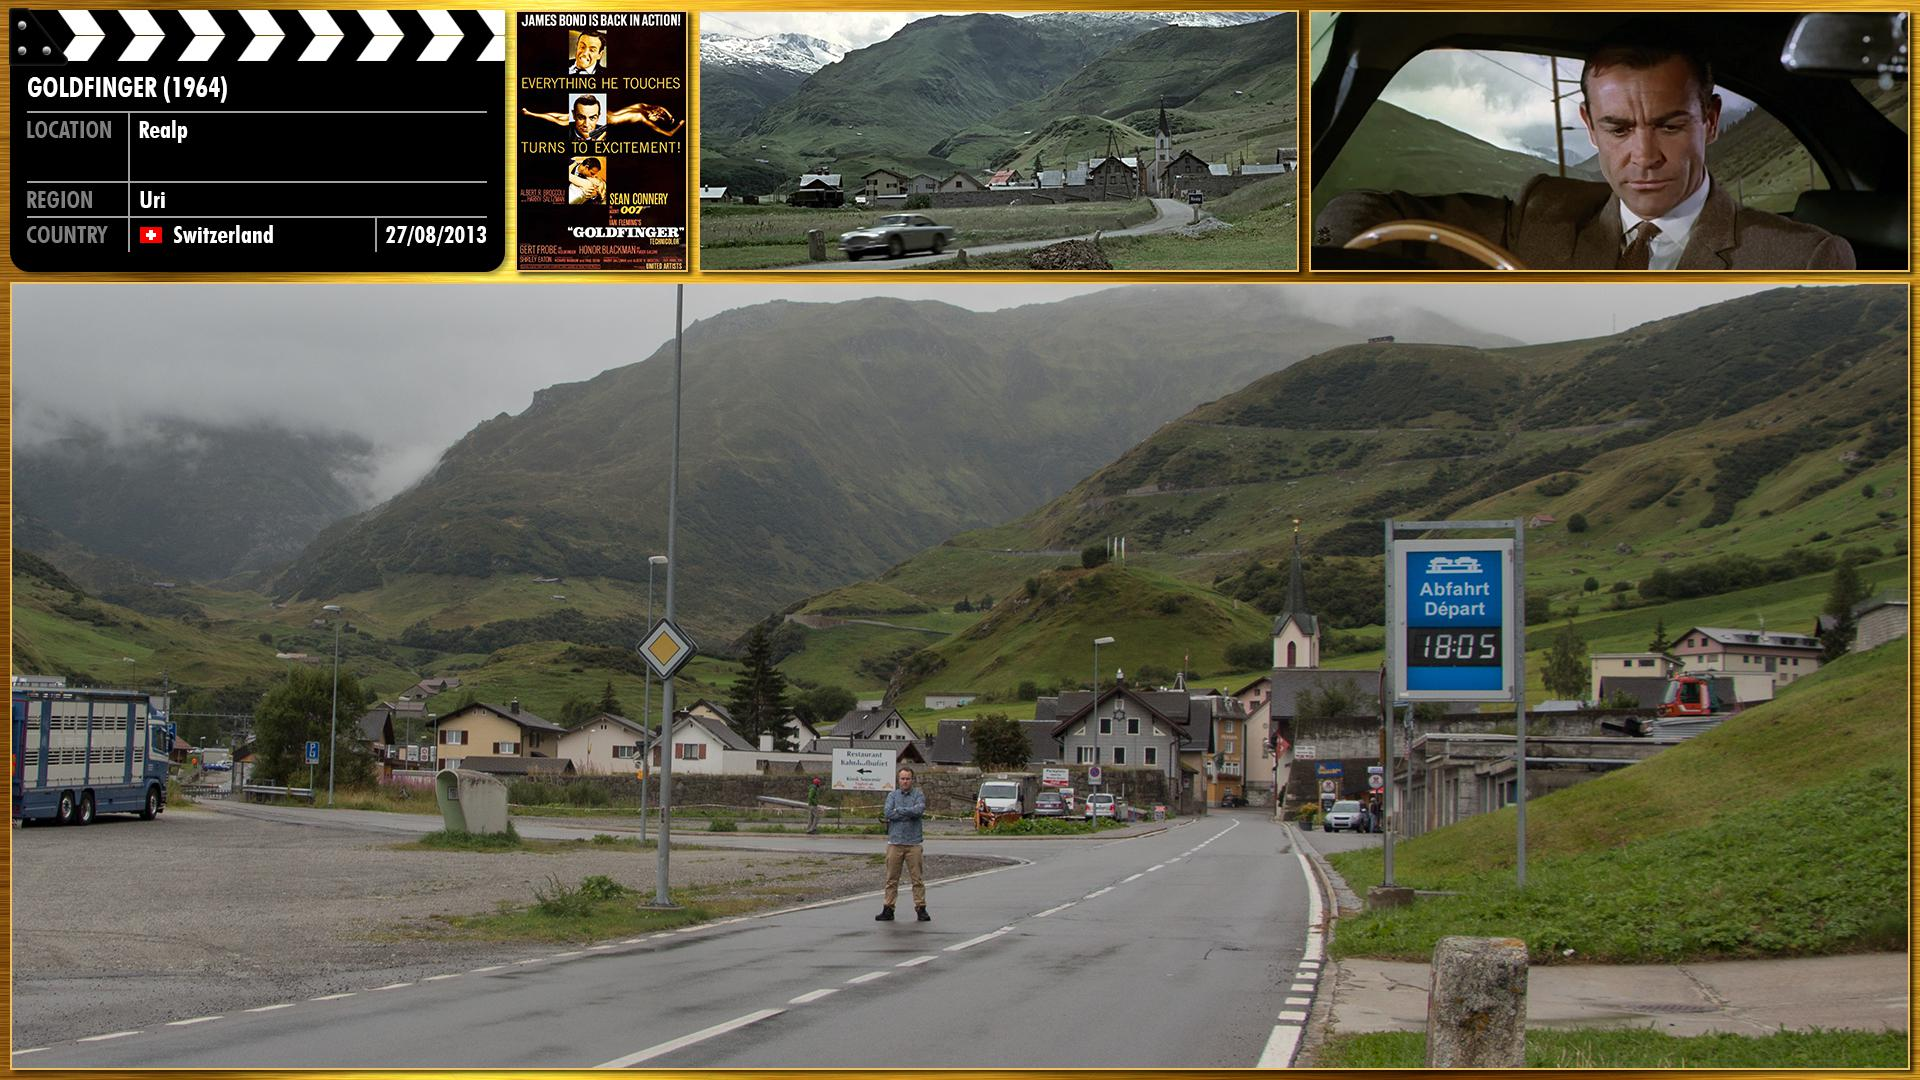 Filming location photo for Goldfinger (1964) 4 of 6